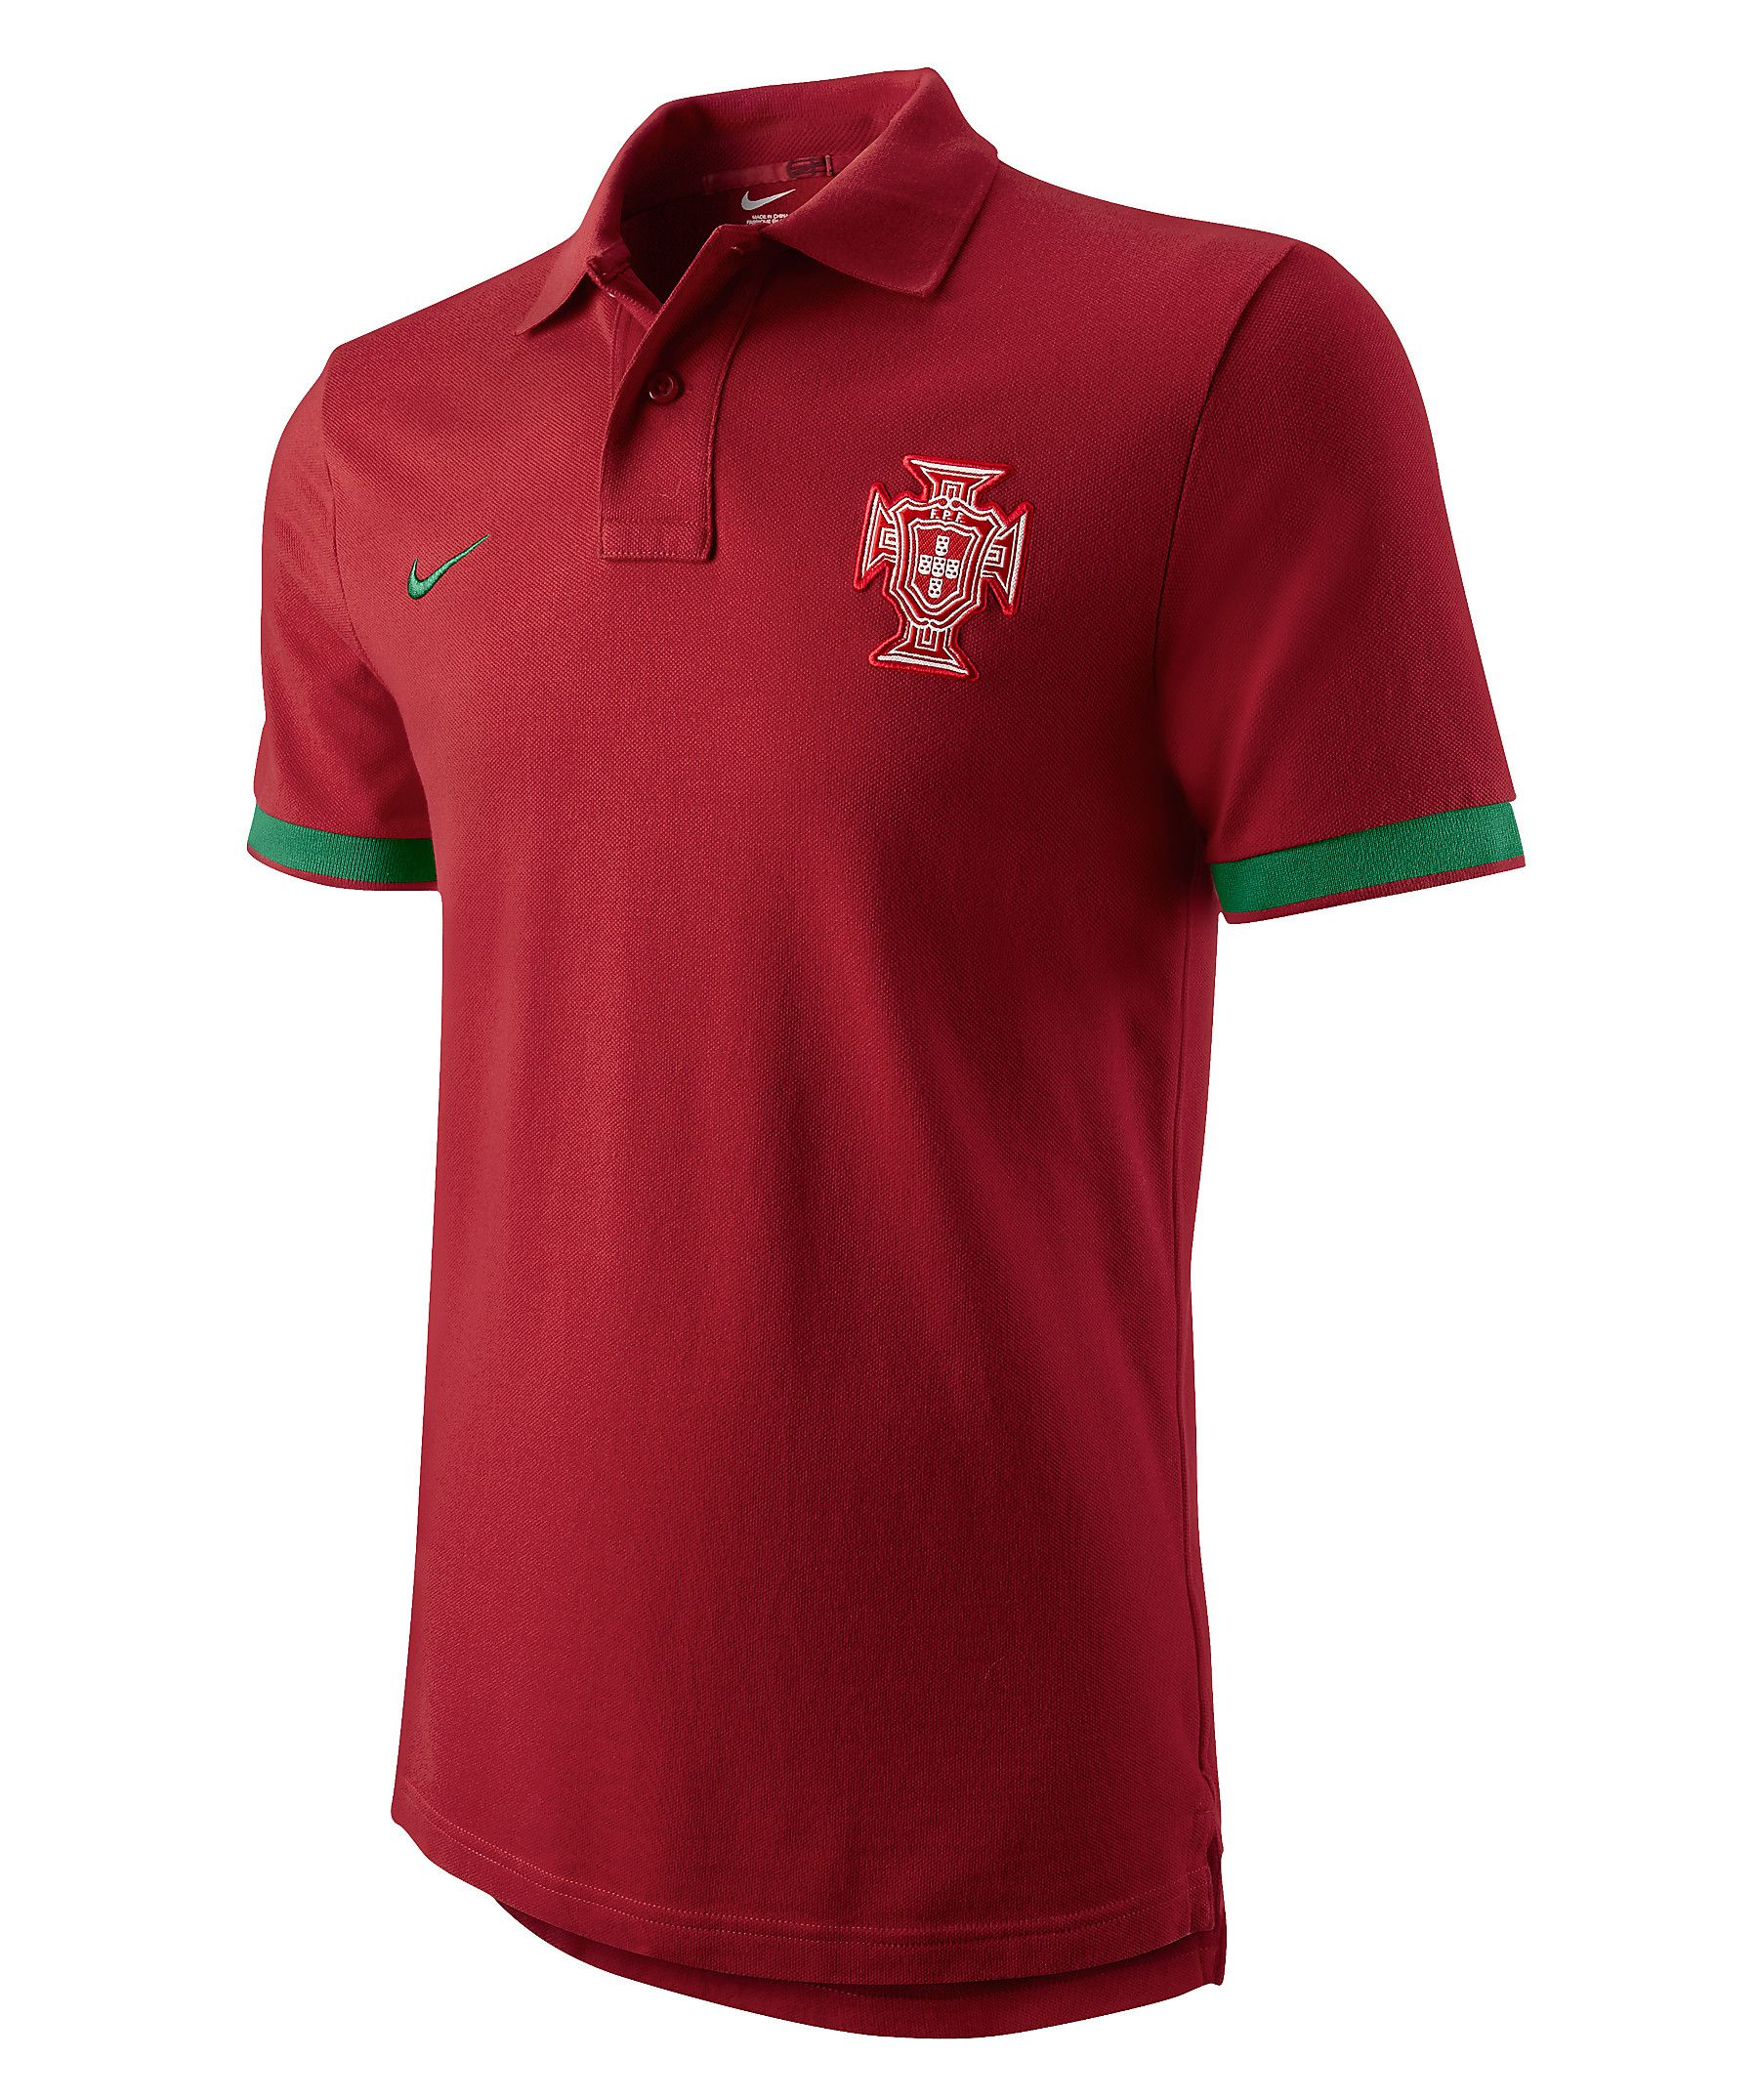 96502a3989d5c4 T-Shirt Portugal Authentic Polo by Nike #sports #soccer #engelhorn ...